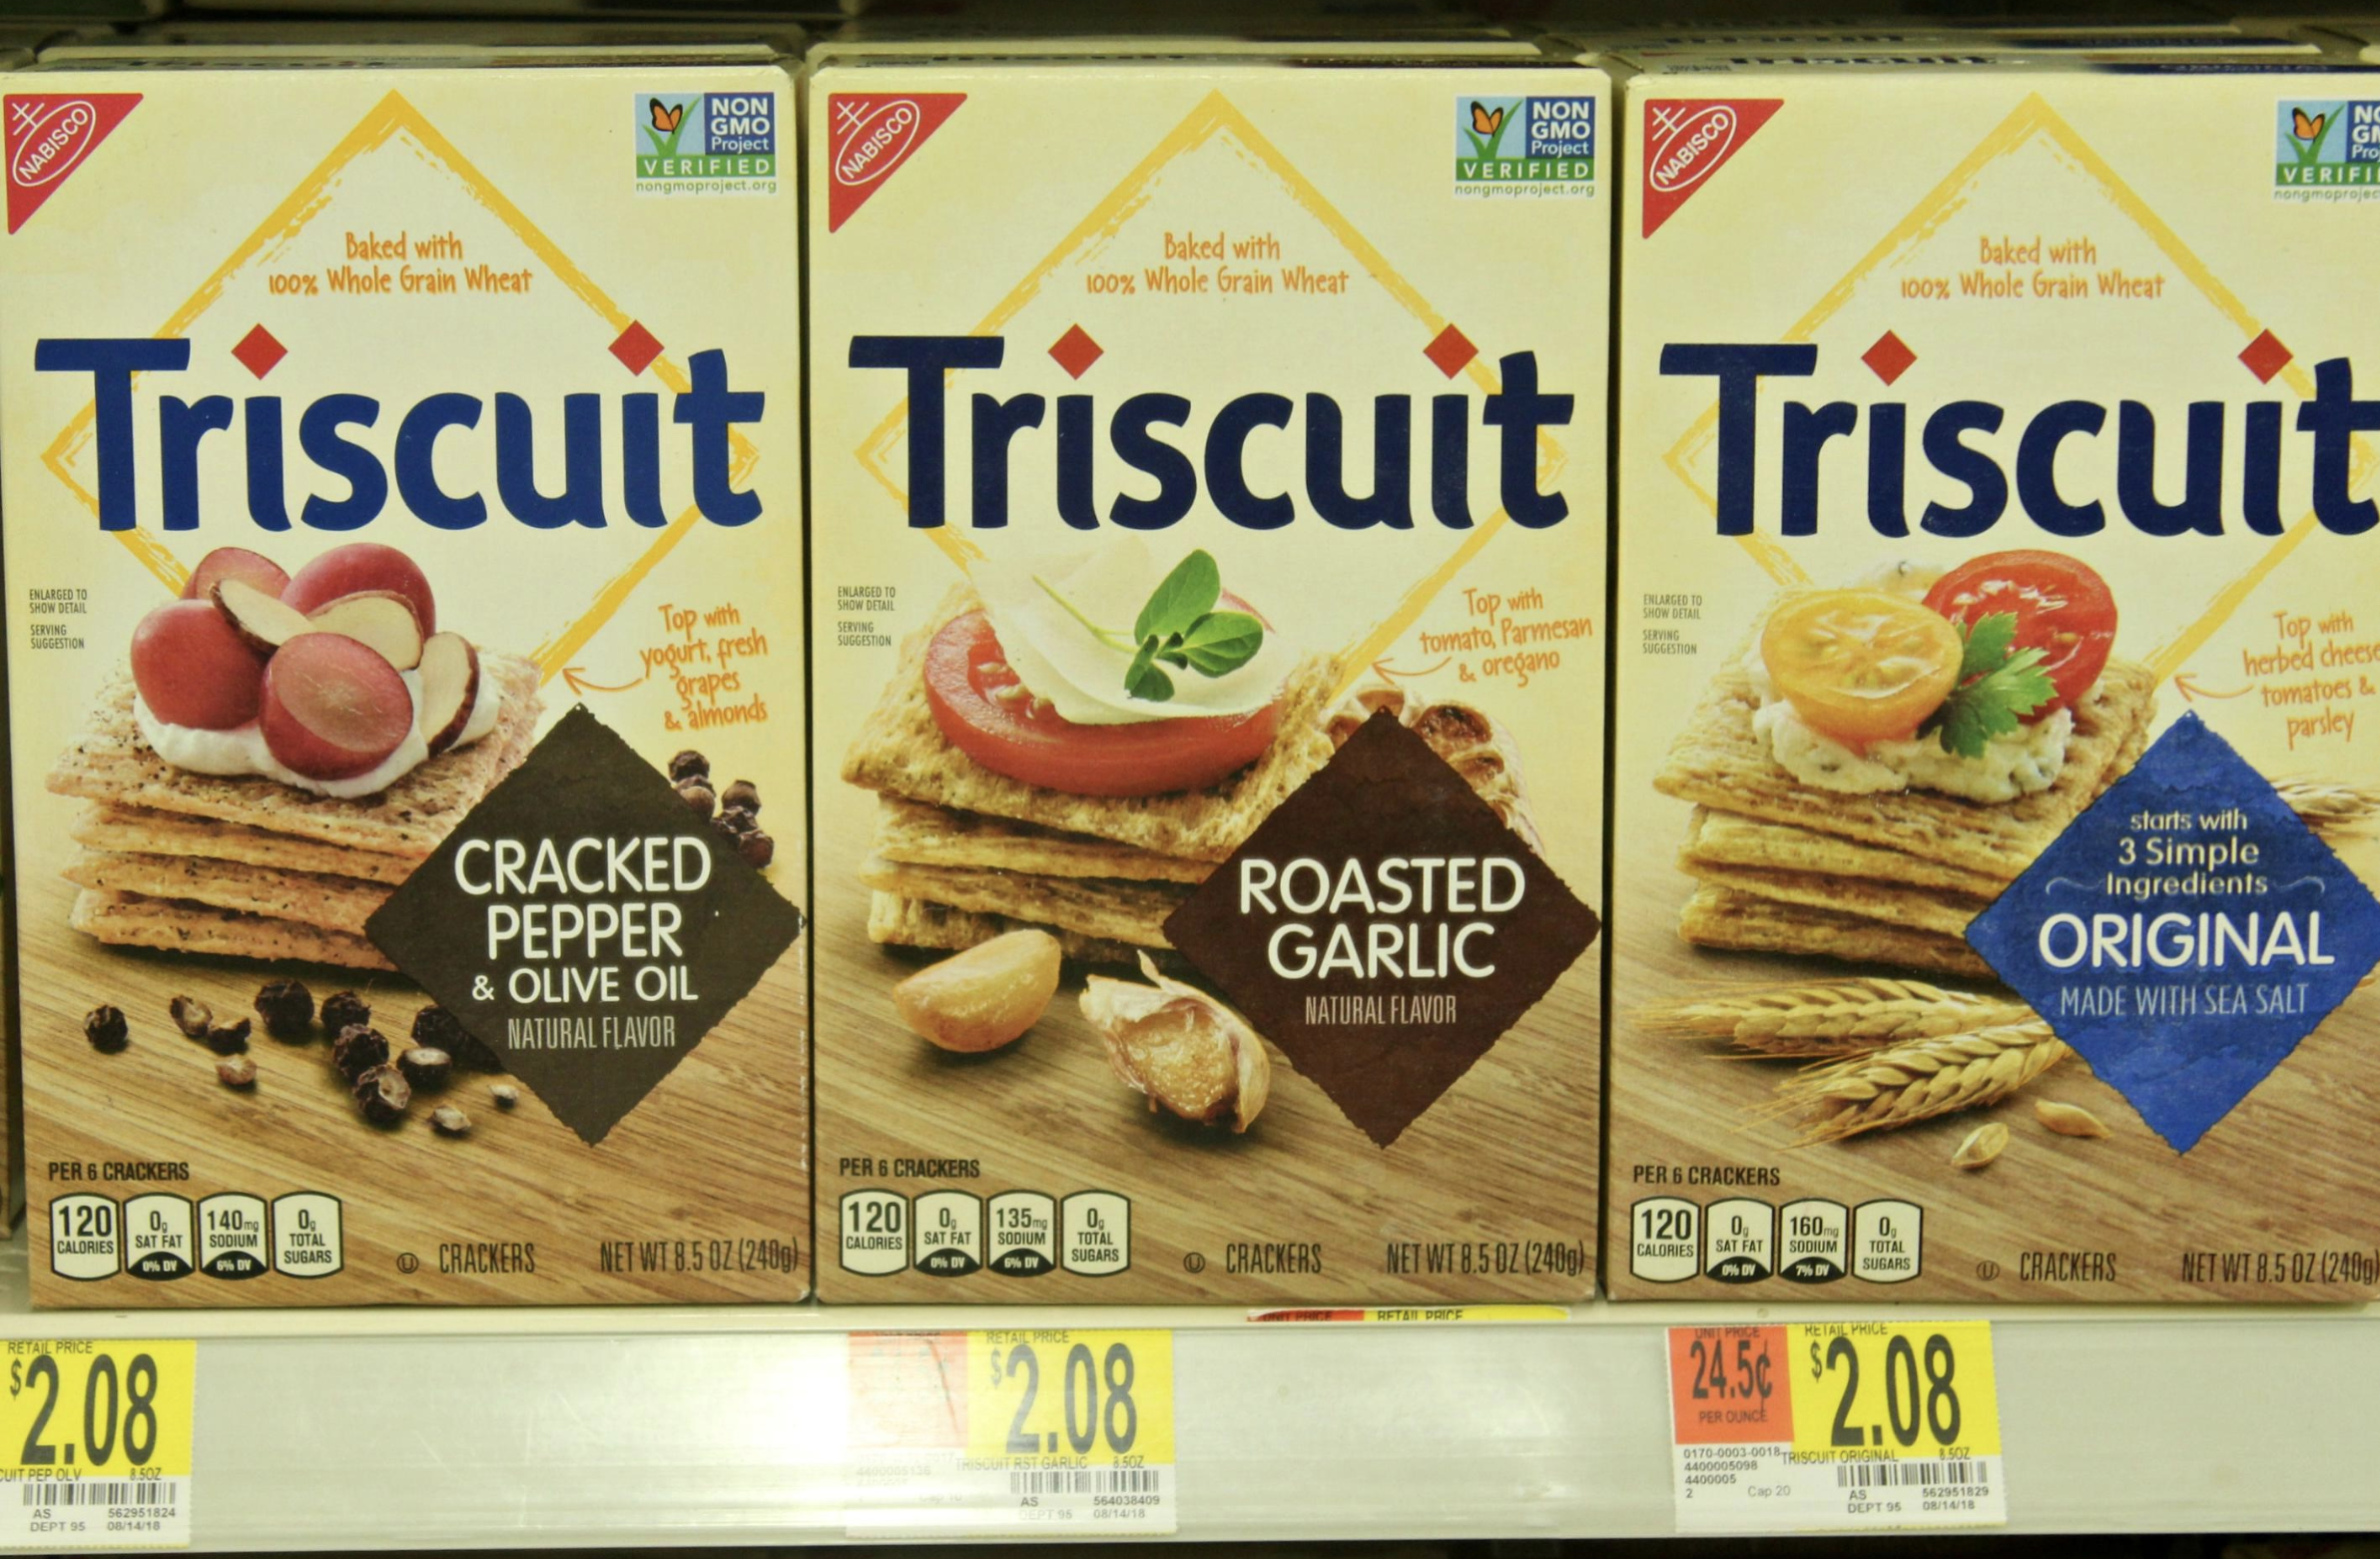 I love that Triscuit is baked with 100% Whole Grain Wheat and is now NON GMO. Pick up Triscuit at Walmart! #HolidaysWithTriscuit #IC #AD